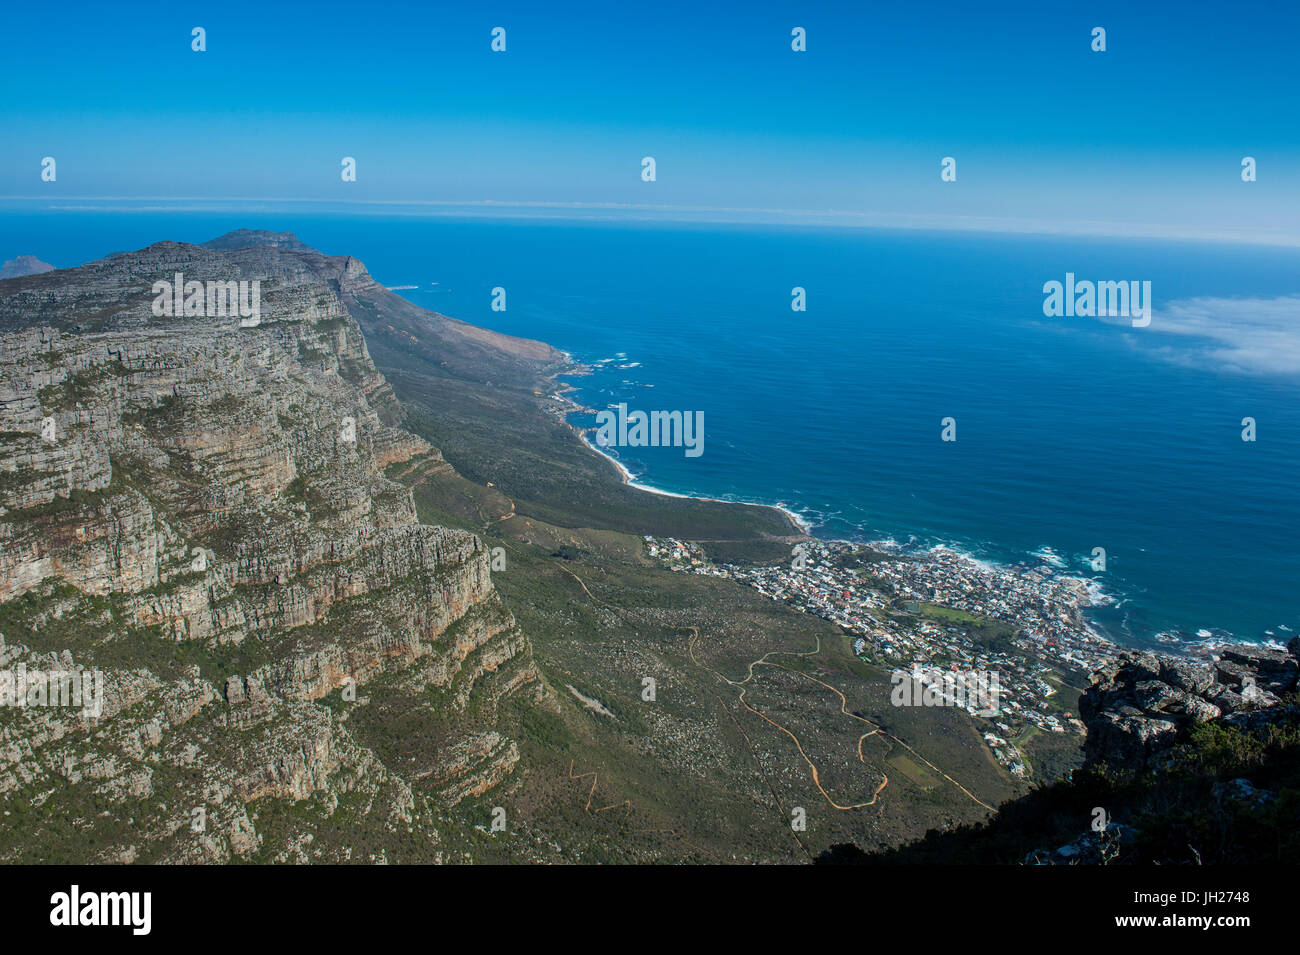 View over Camps Bay, Cape Town, Table Mountain, South Africa, Africa - Stock Image